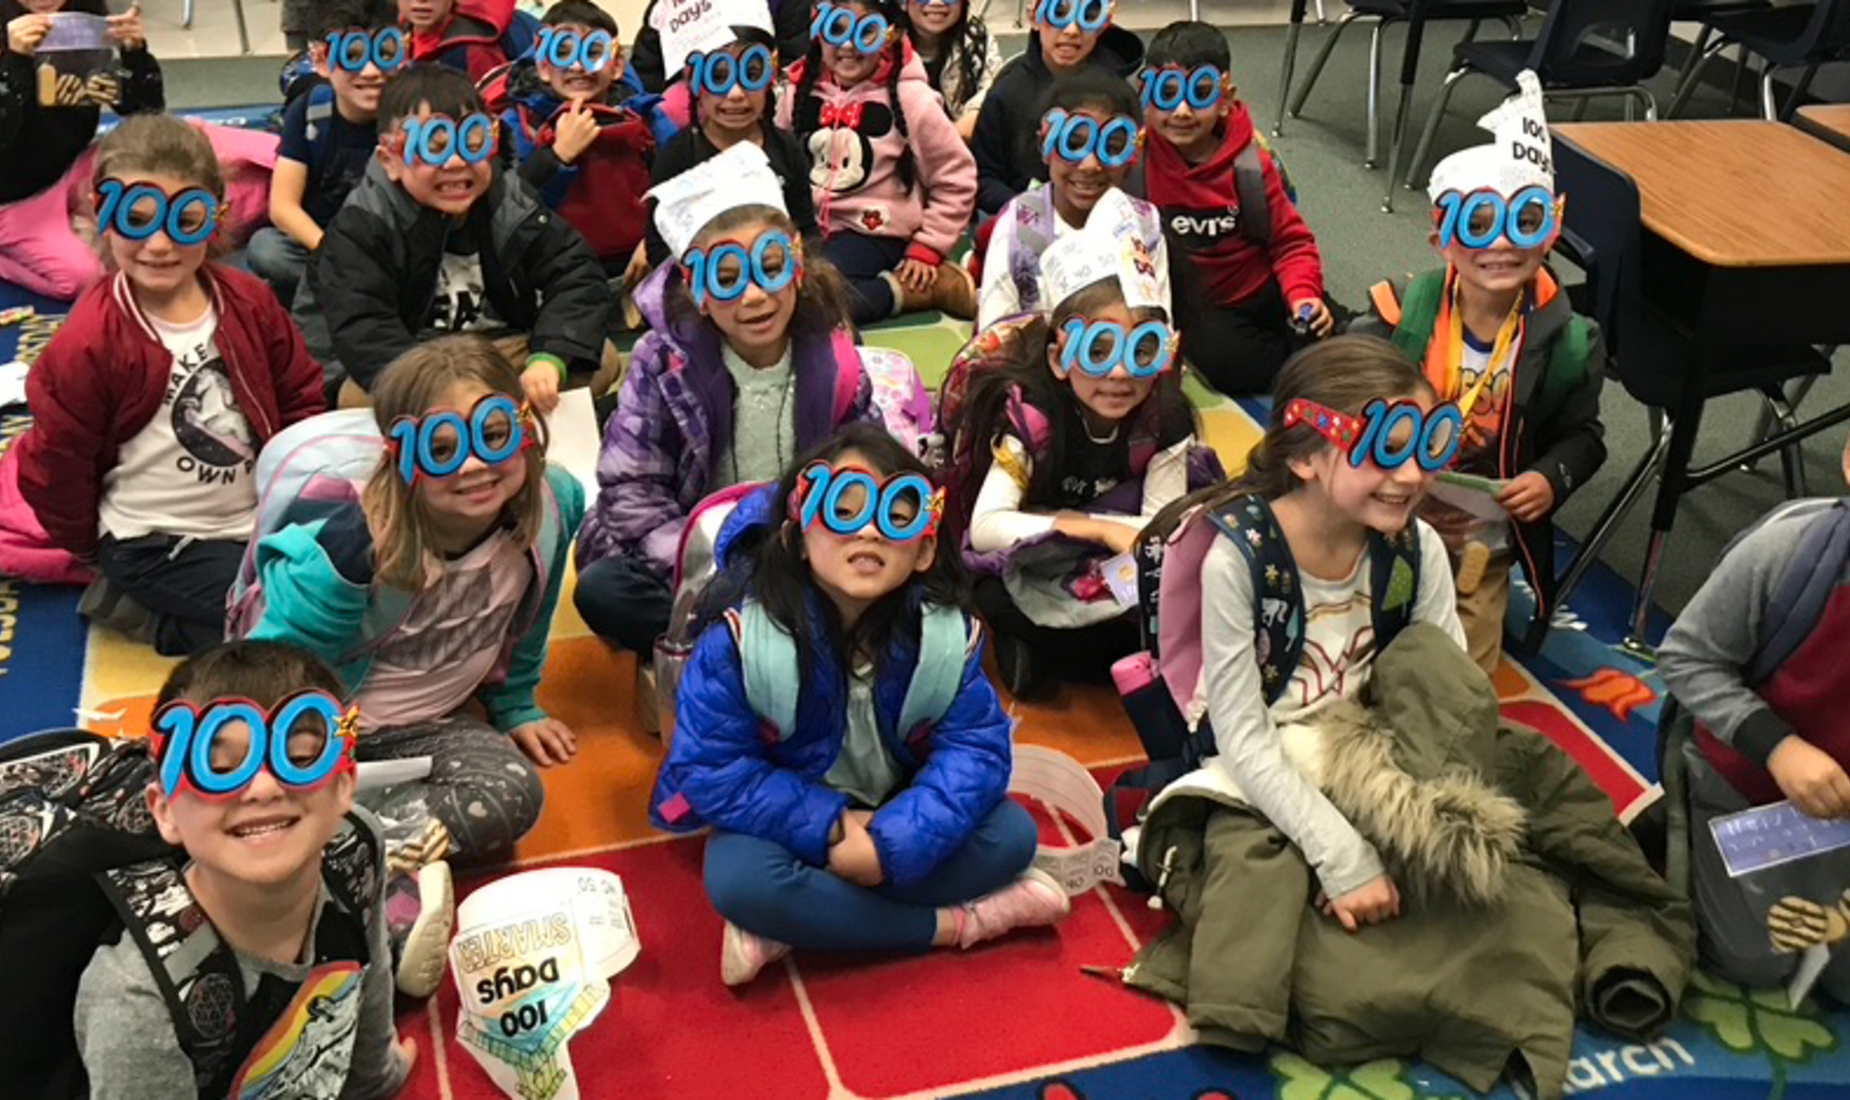 Mrs. Ghelardi's class on 100th day